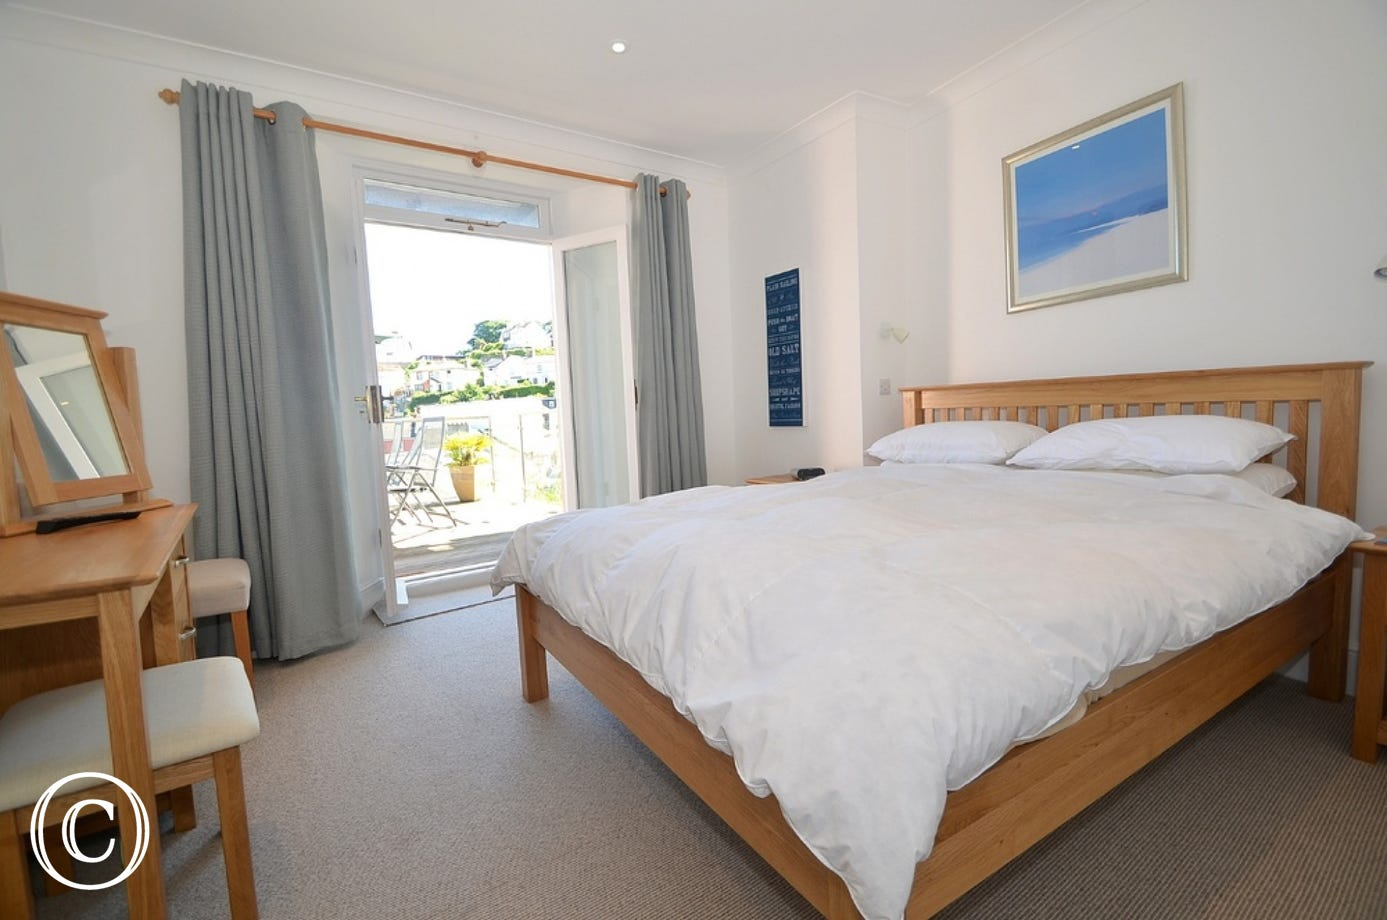 First floor, master bedroom: Double patio doors leading out onto the balcony, double bed, double built in wardrobe, dressing table, Freeview TV.